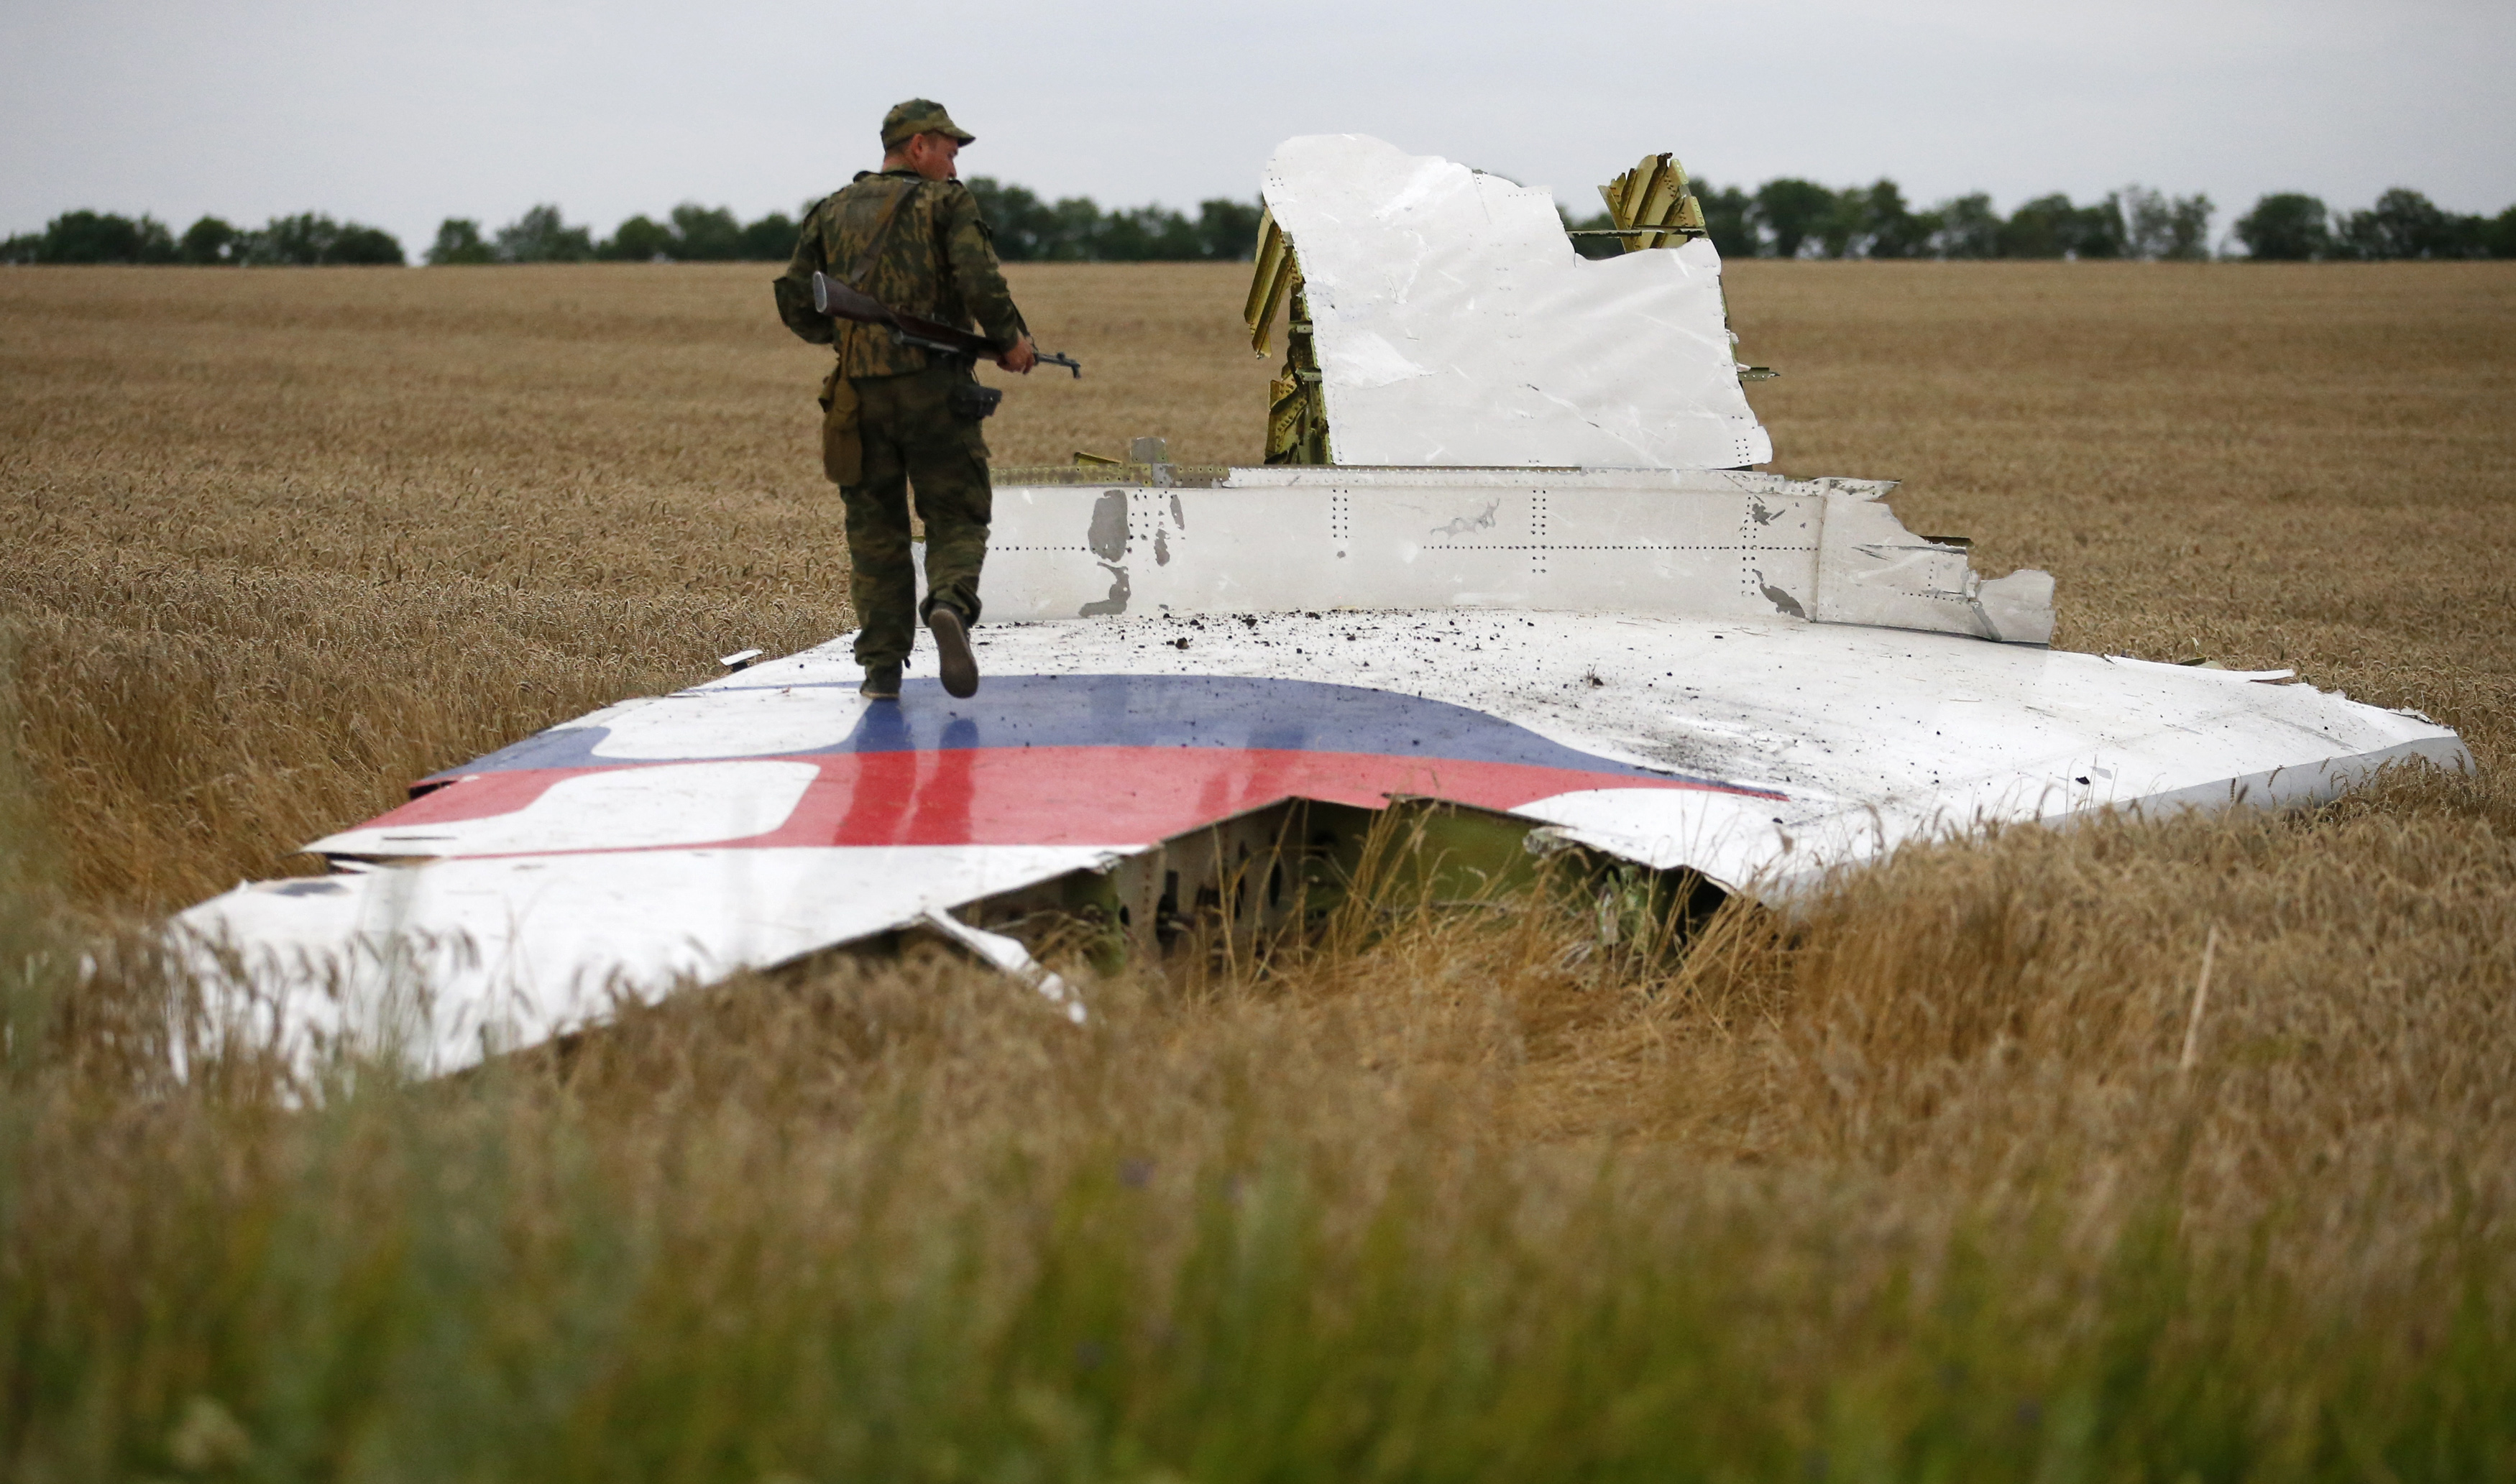 Armed pro-Russian separatist stands on part of the wreckage of the Malaysia Airlines Boeing 777 plane after it crashed near the settlement of Grabovo in the Donetsk region